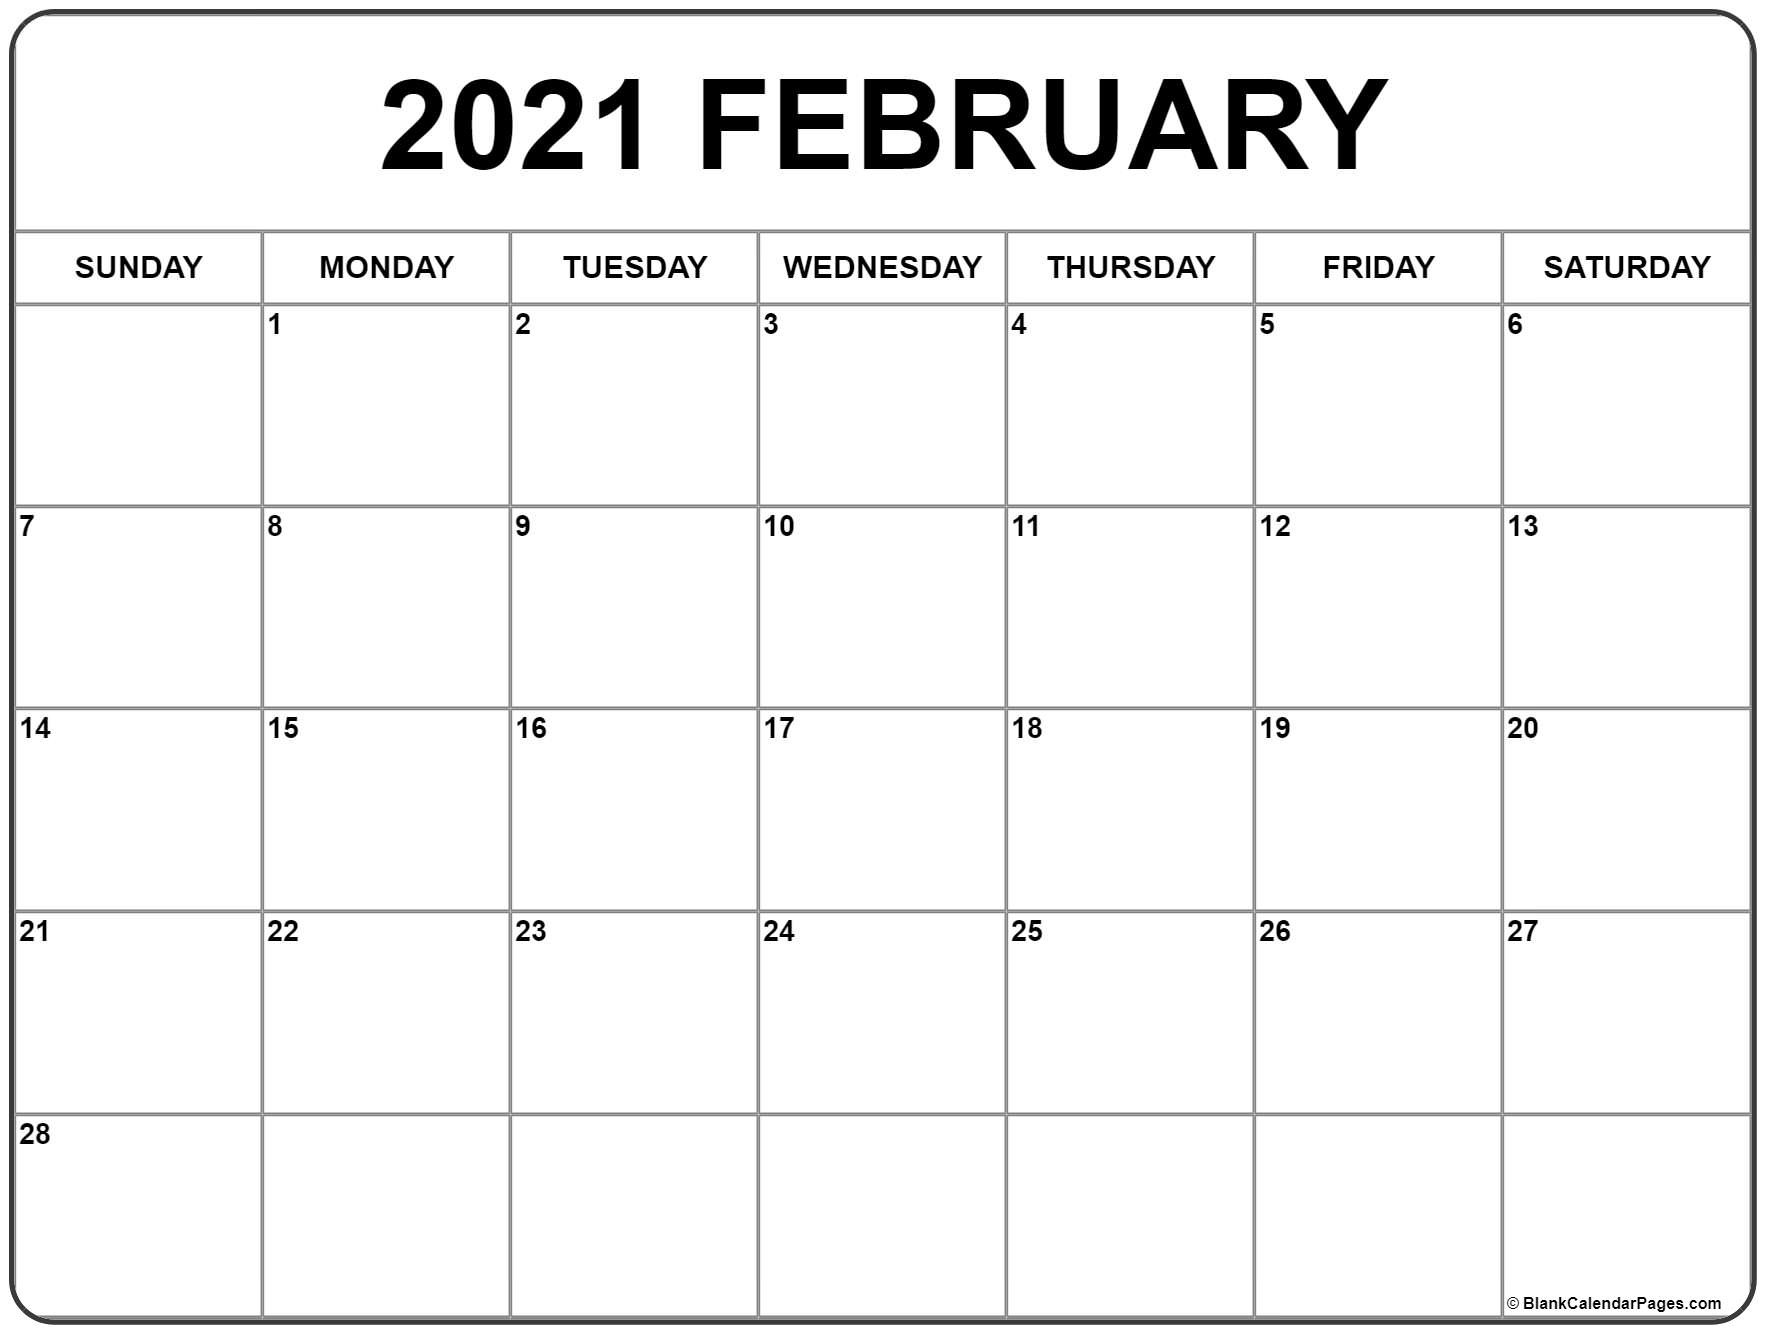 February 2021 Calendar | Free Printable Monthly Calendars  Printable Online Calendar 2021